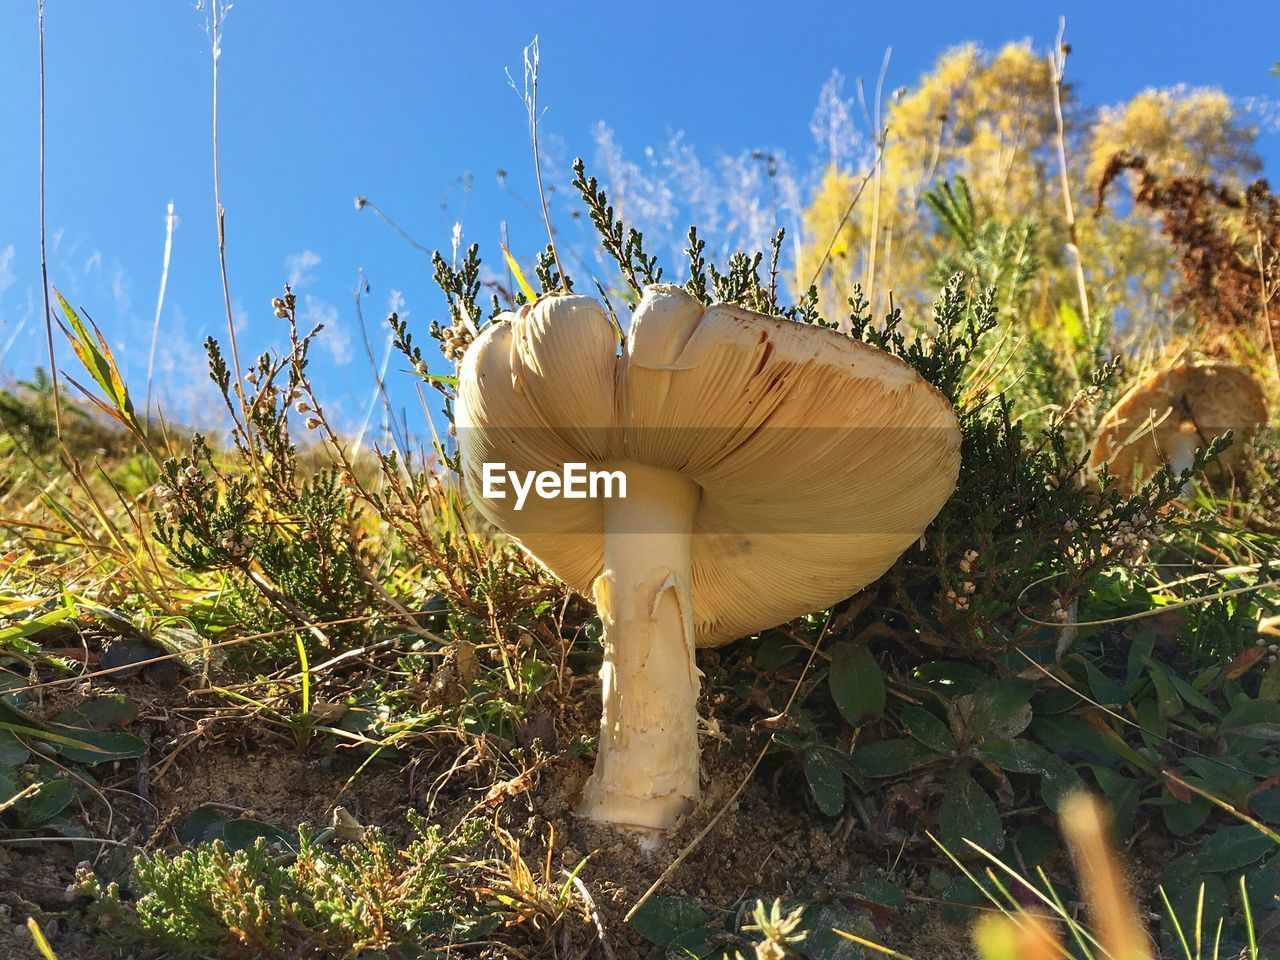 Close-Up Of Mushrooms Growing On Field Against Sky